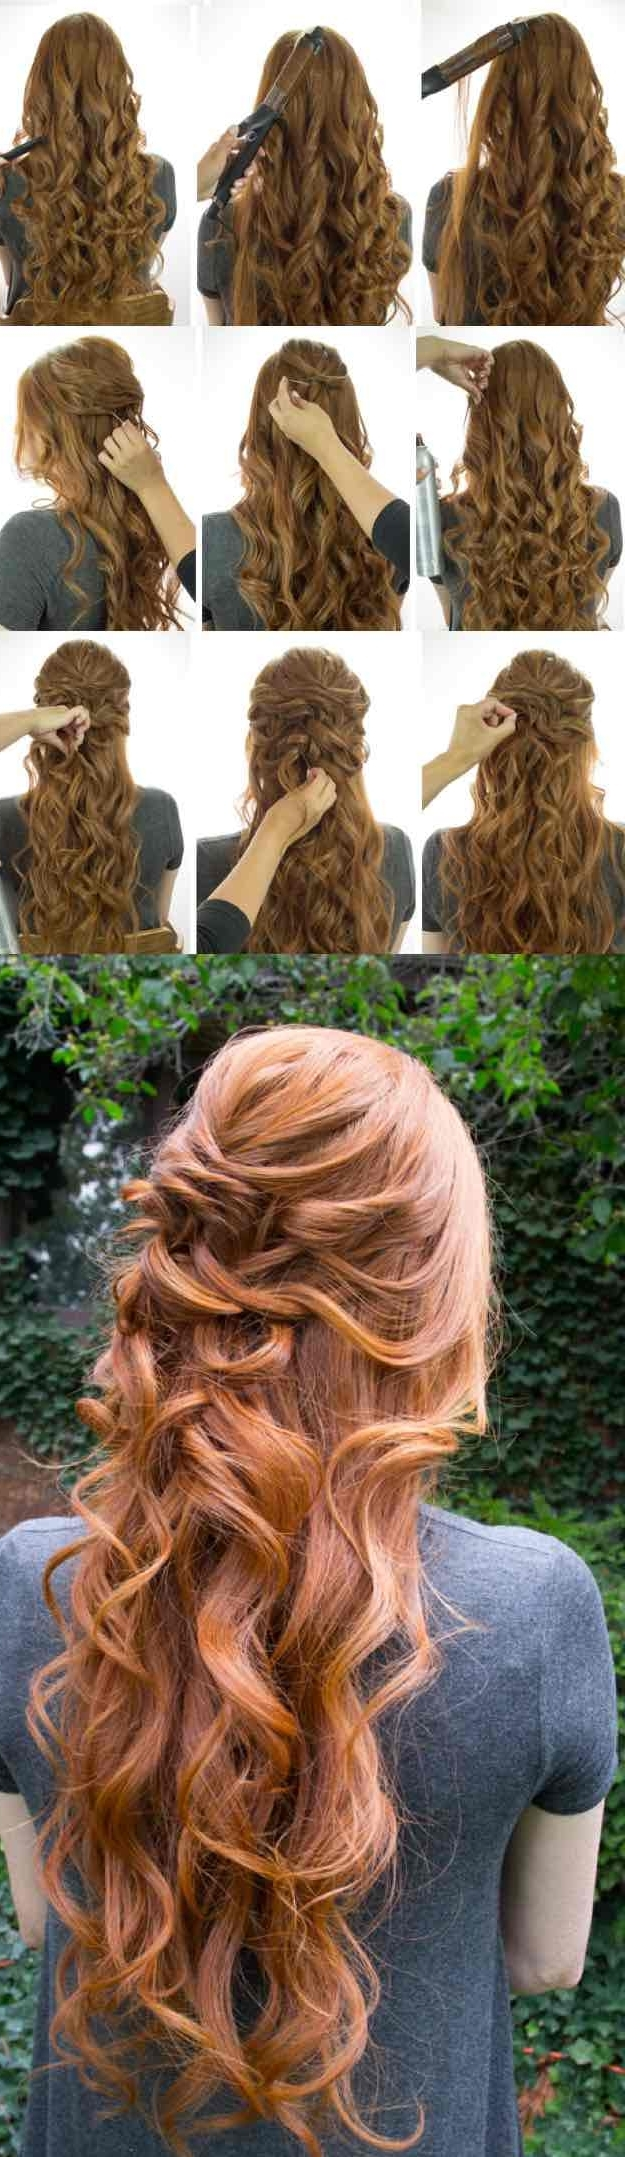 25 Easy Half Up Half Down Hairstyle Tutorials For Prom Half Up Half Down Formal Hairstyles For Medium Hair